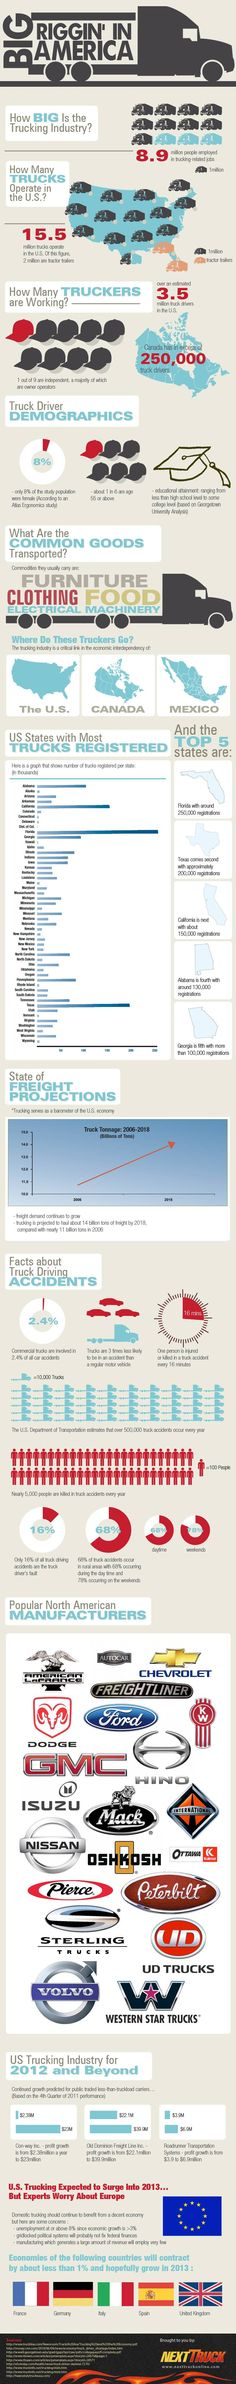 #TruckingInfographic: How big it the trucking industry?